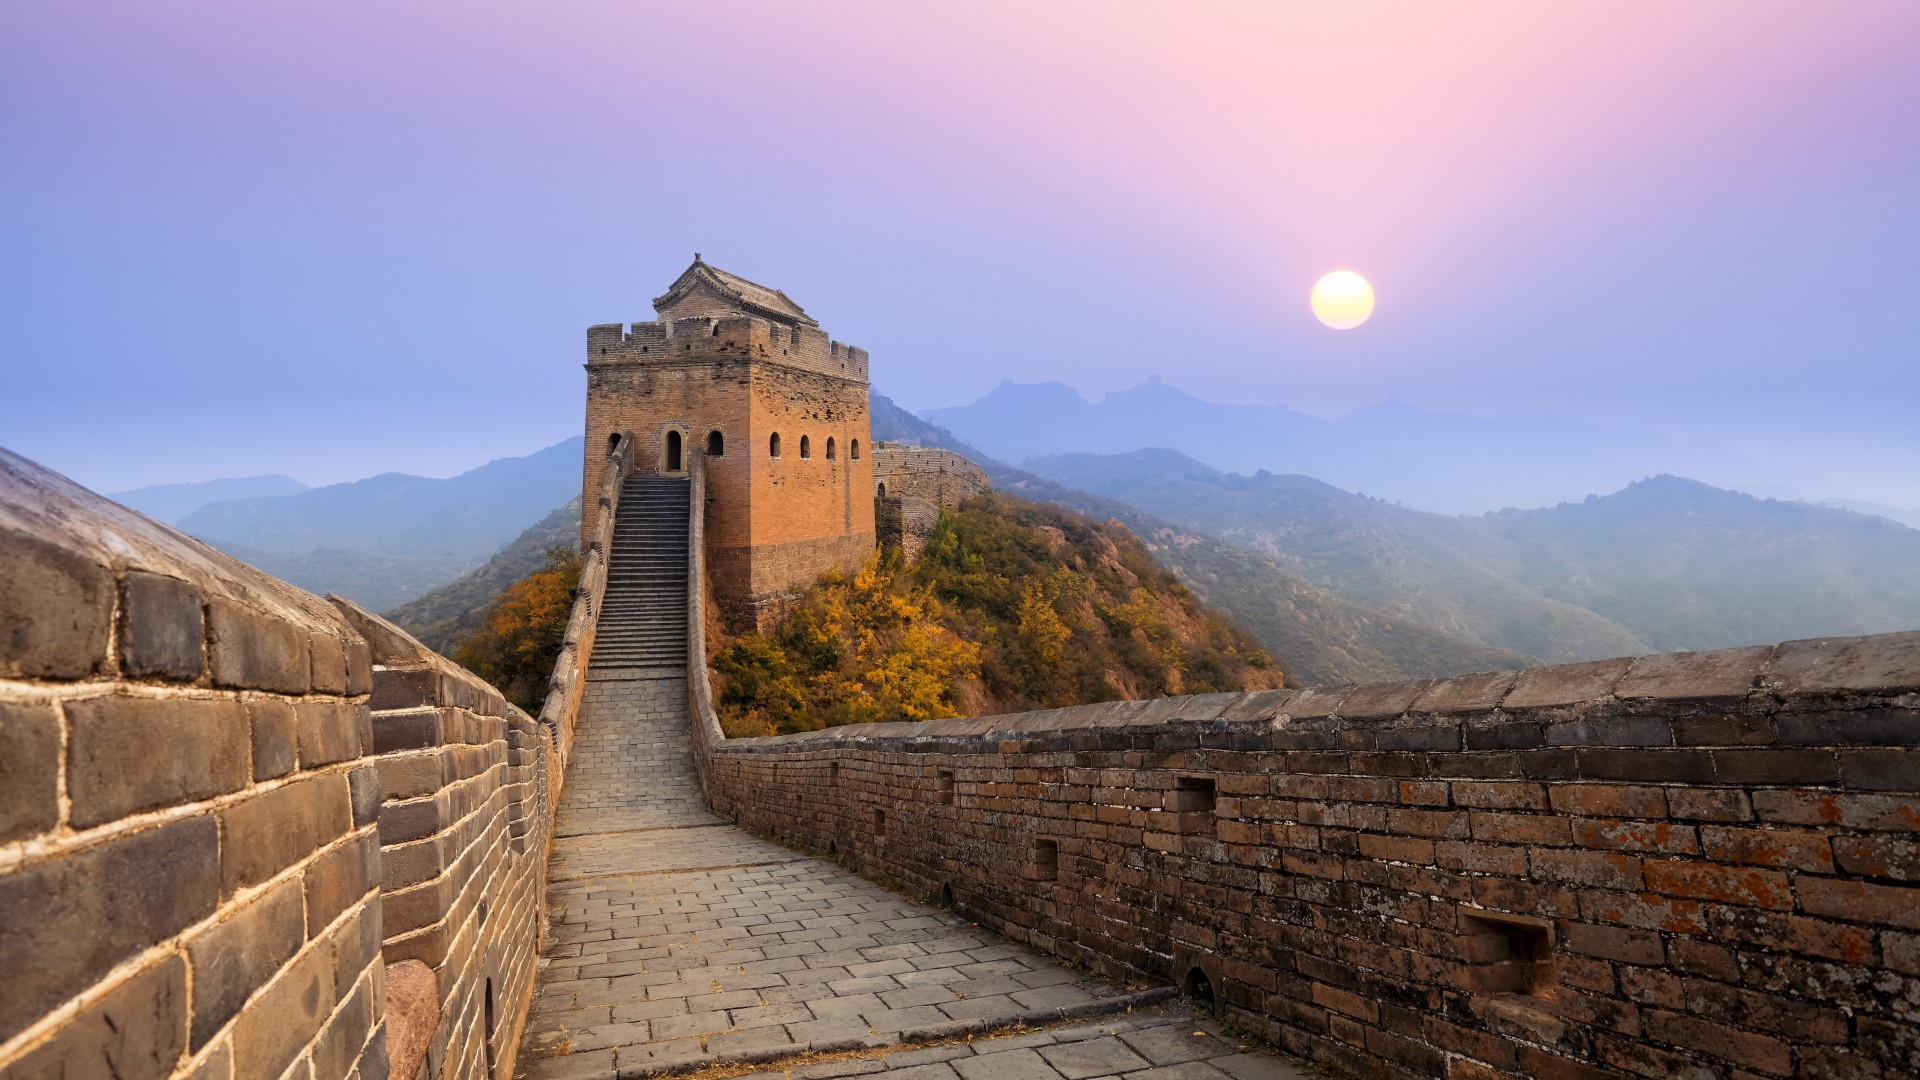 Download Cars Wallpapers For Windows 7 Great Wall Of China Sunrise Wallpapers Hd Wallpapers